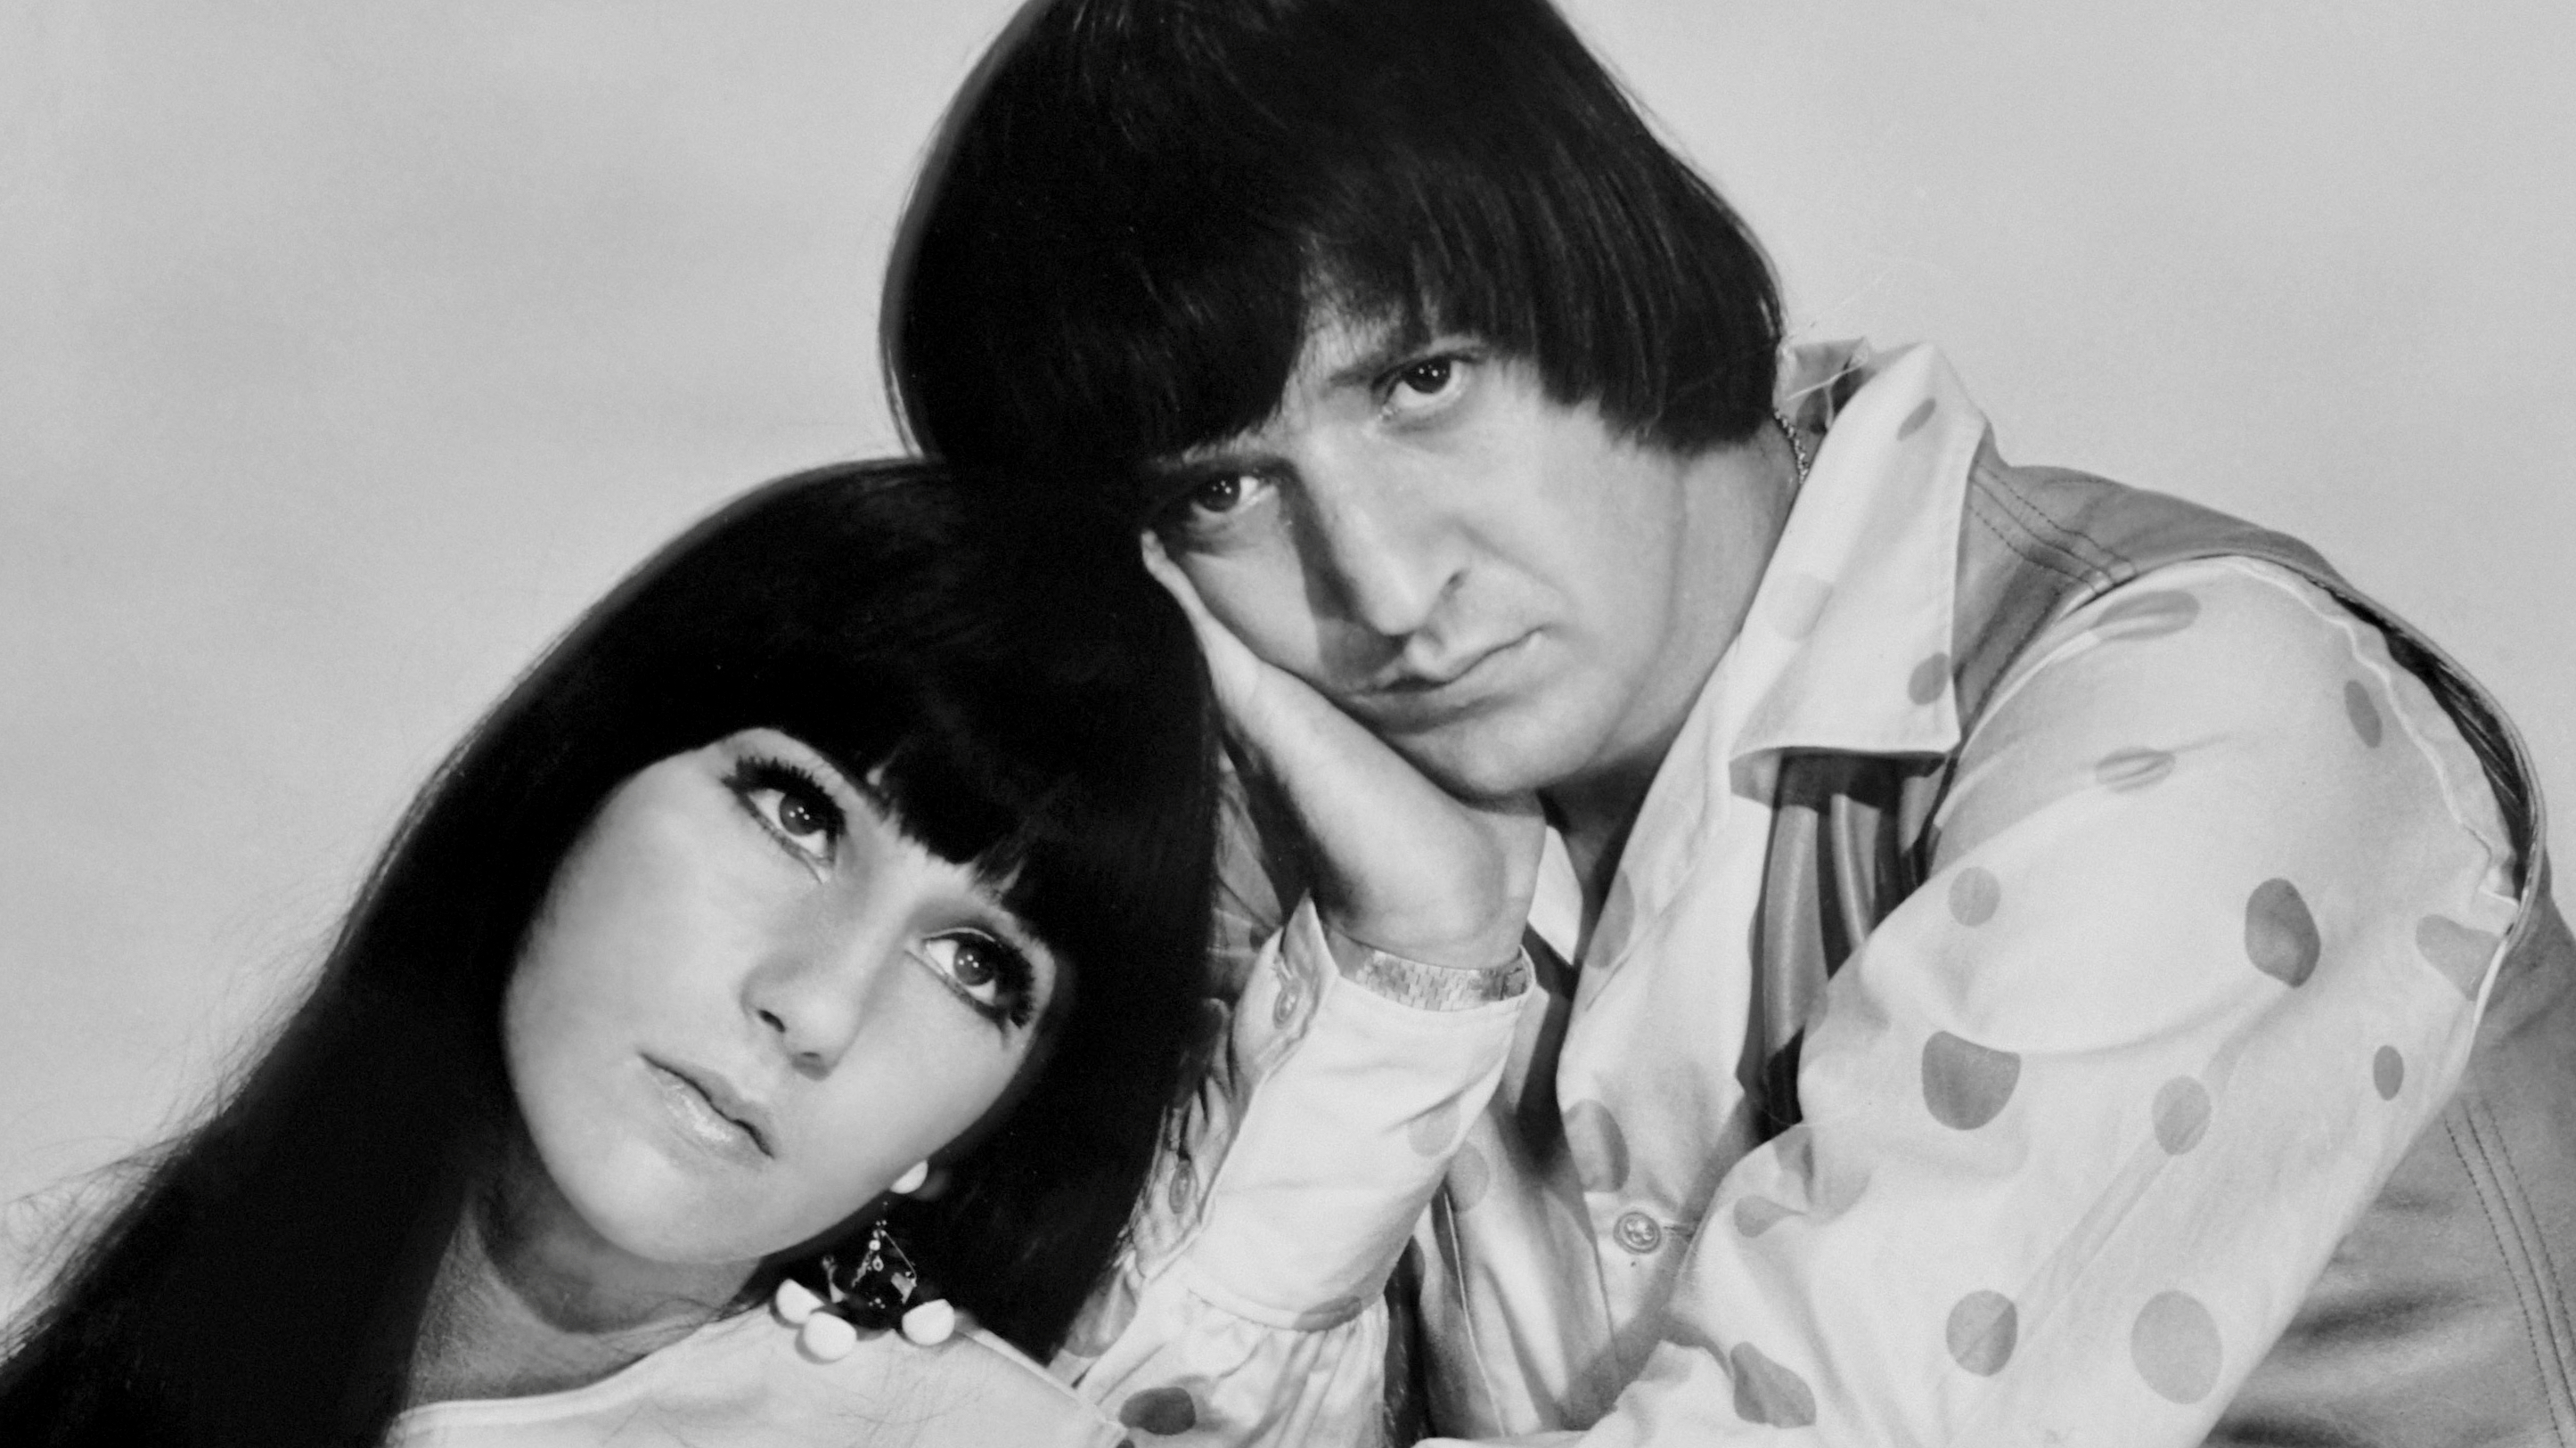 sonny_and_cher_question_2_16-9